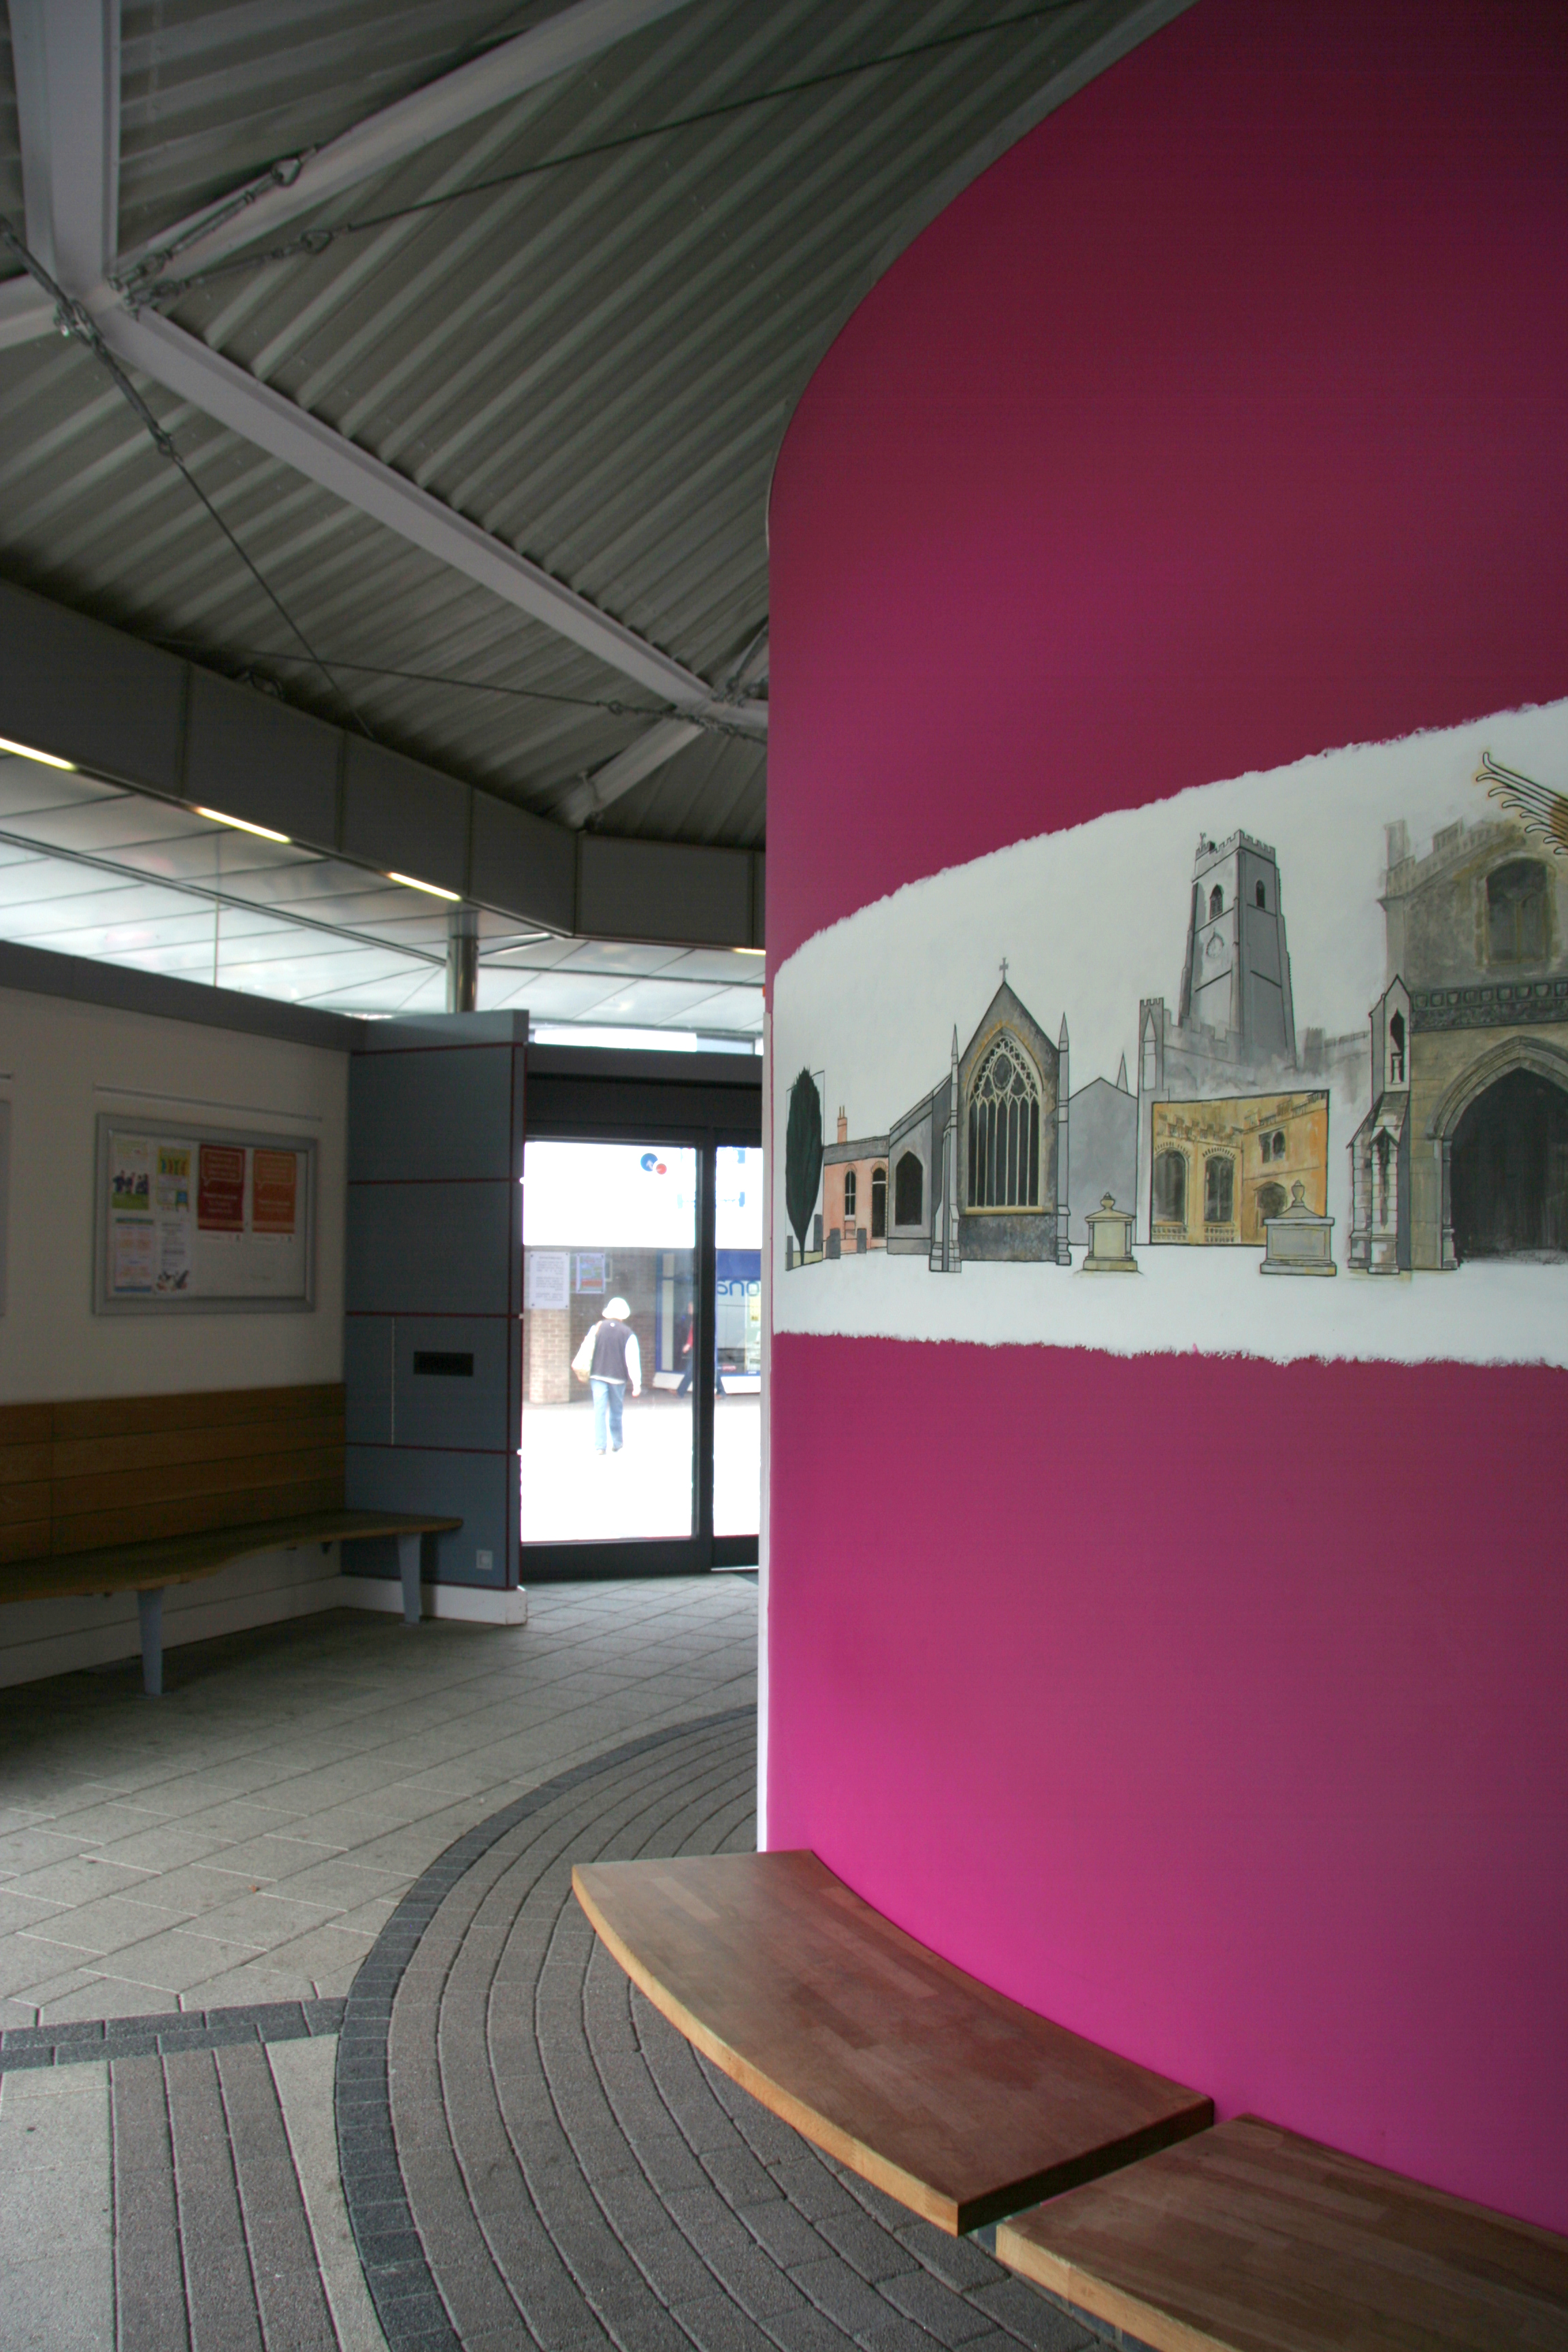 Commercial Architectural And Consultancy Services In Guildford